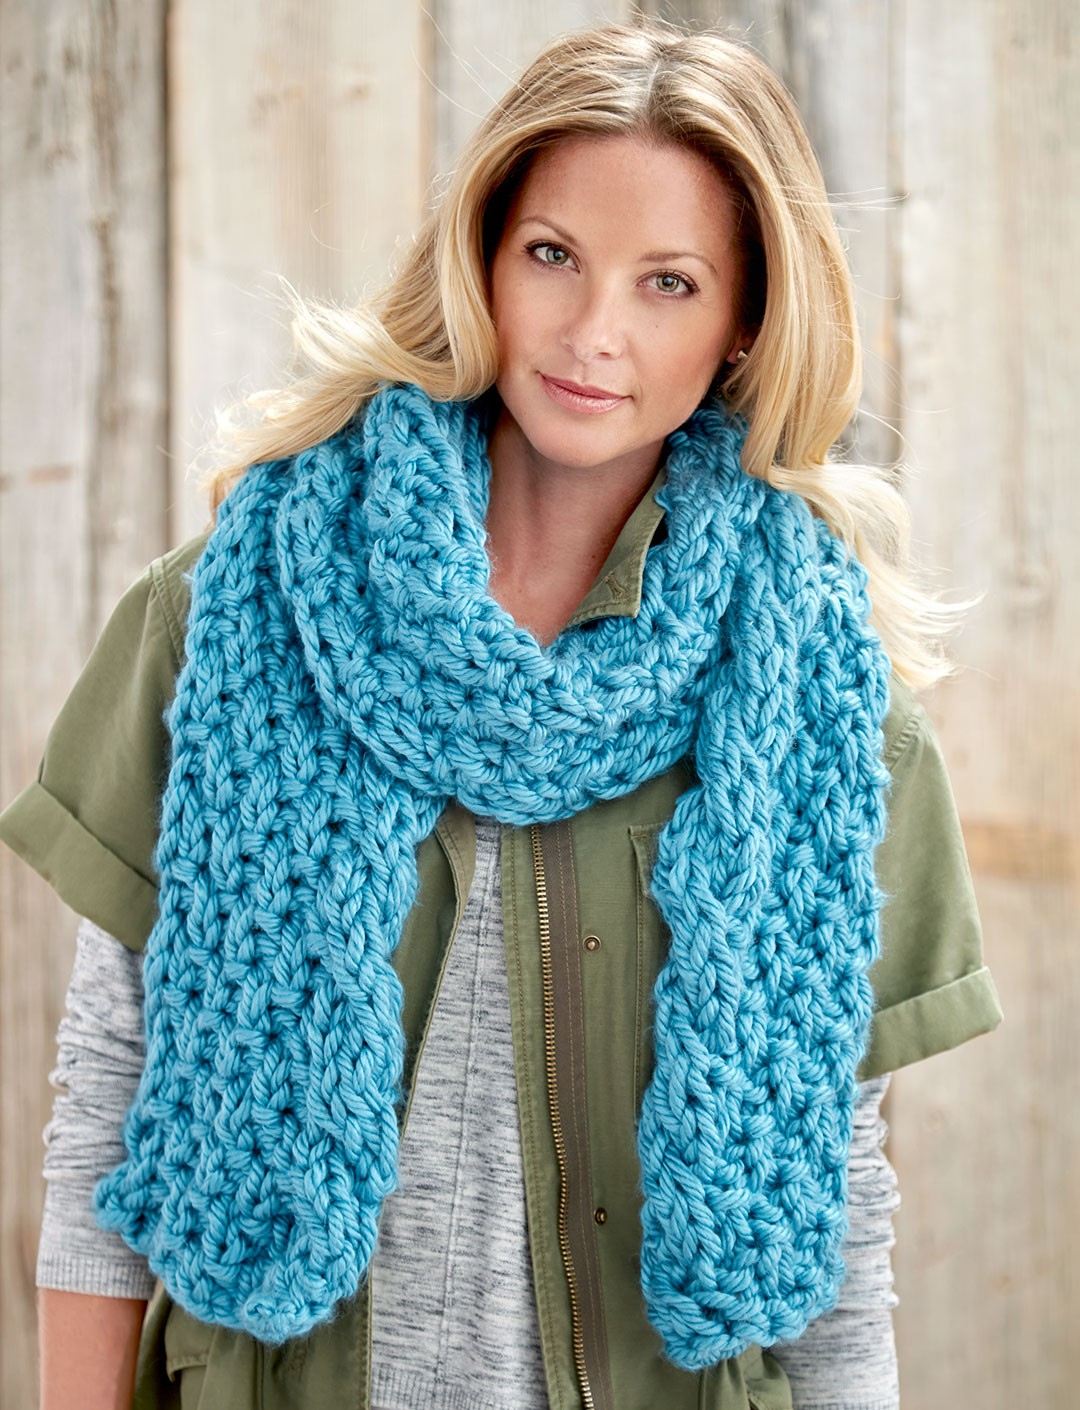 Crochet Shawl Patterns With Bulky Yarn : Bernat Cable Edge Scarf, Knit Pattern Yarnspirations